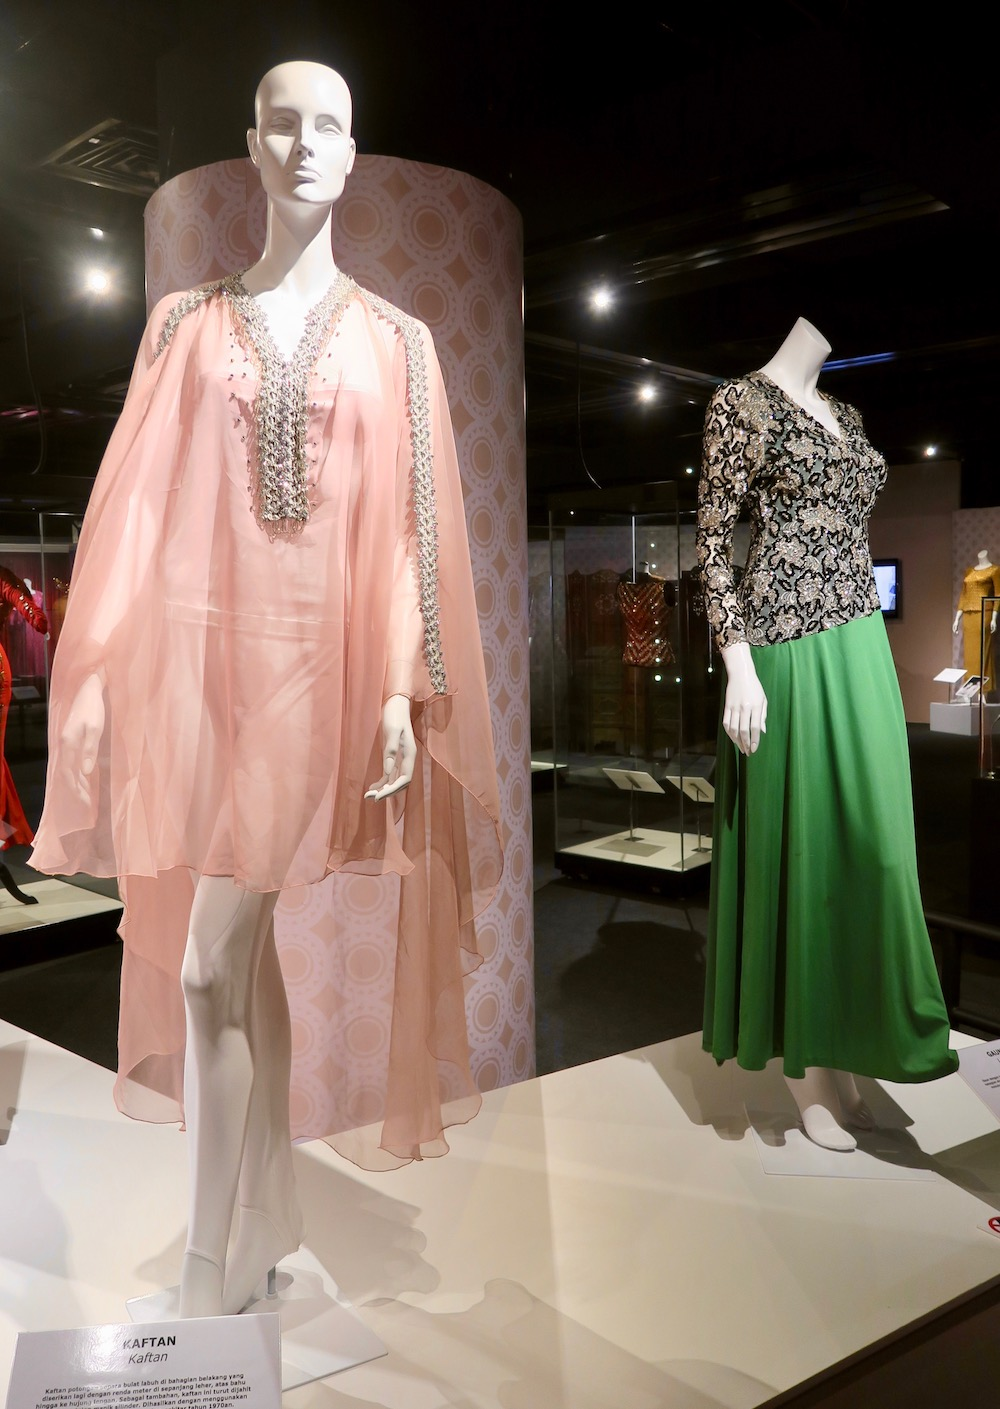 Two garments of Saloma on display  curlytraveller.com